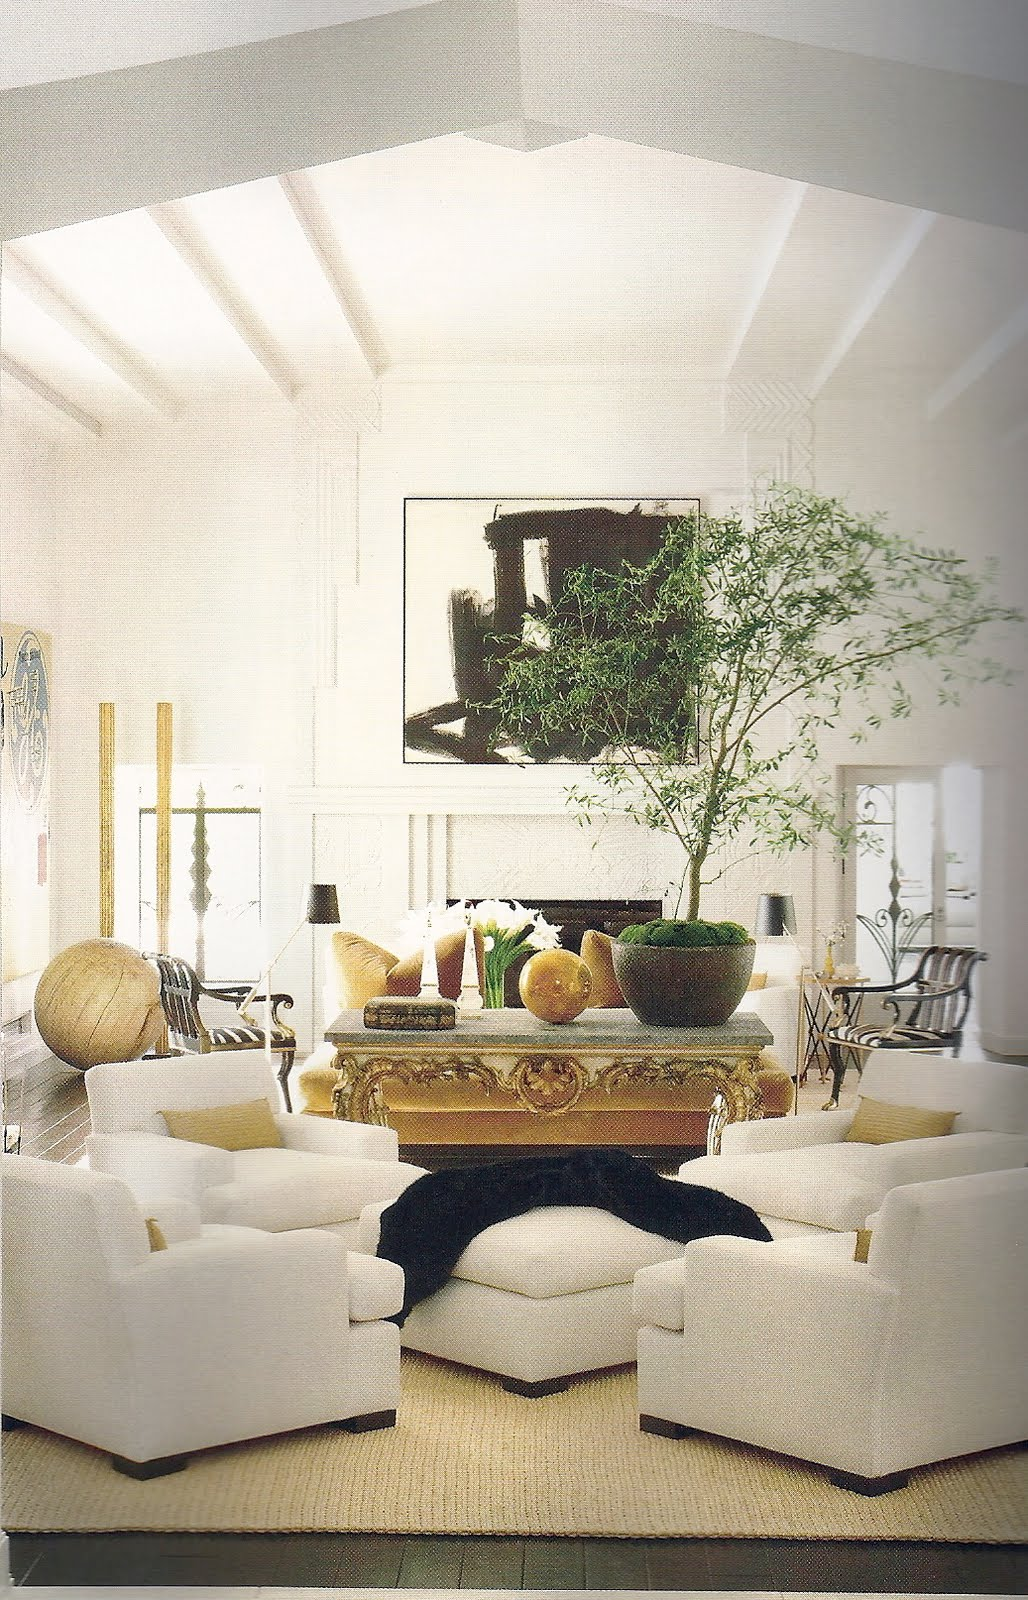 Richard hallberg in los angeles for Couch and sofa table in front of window